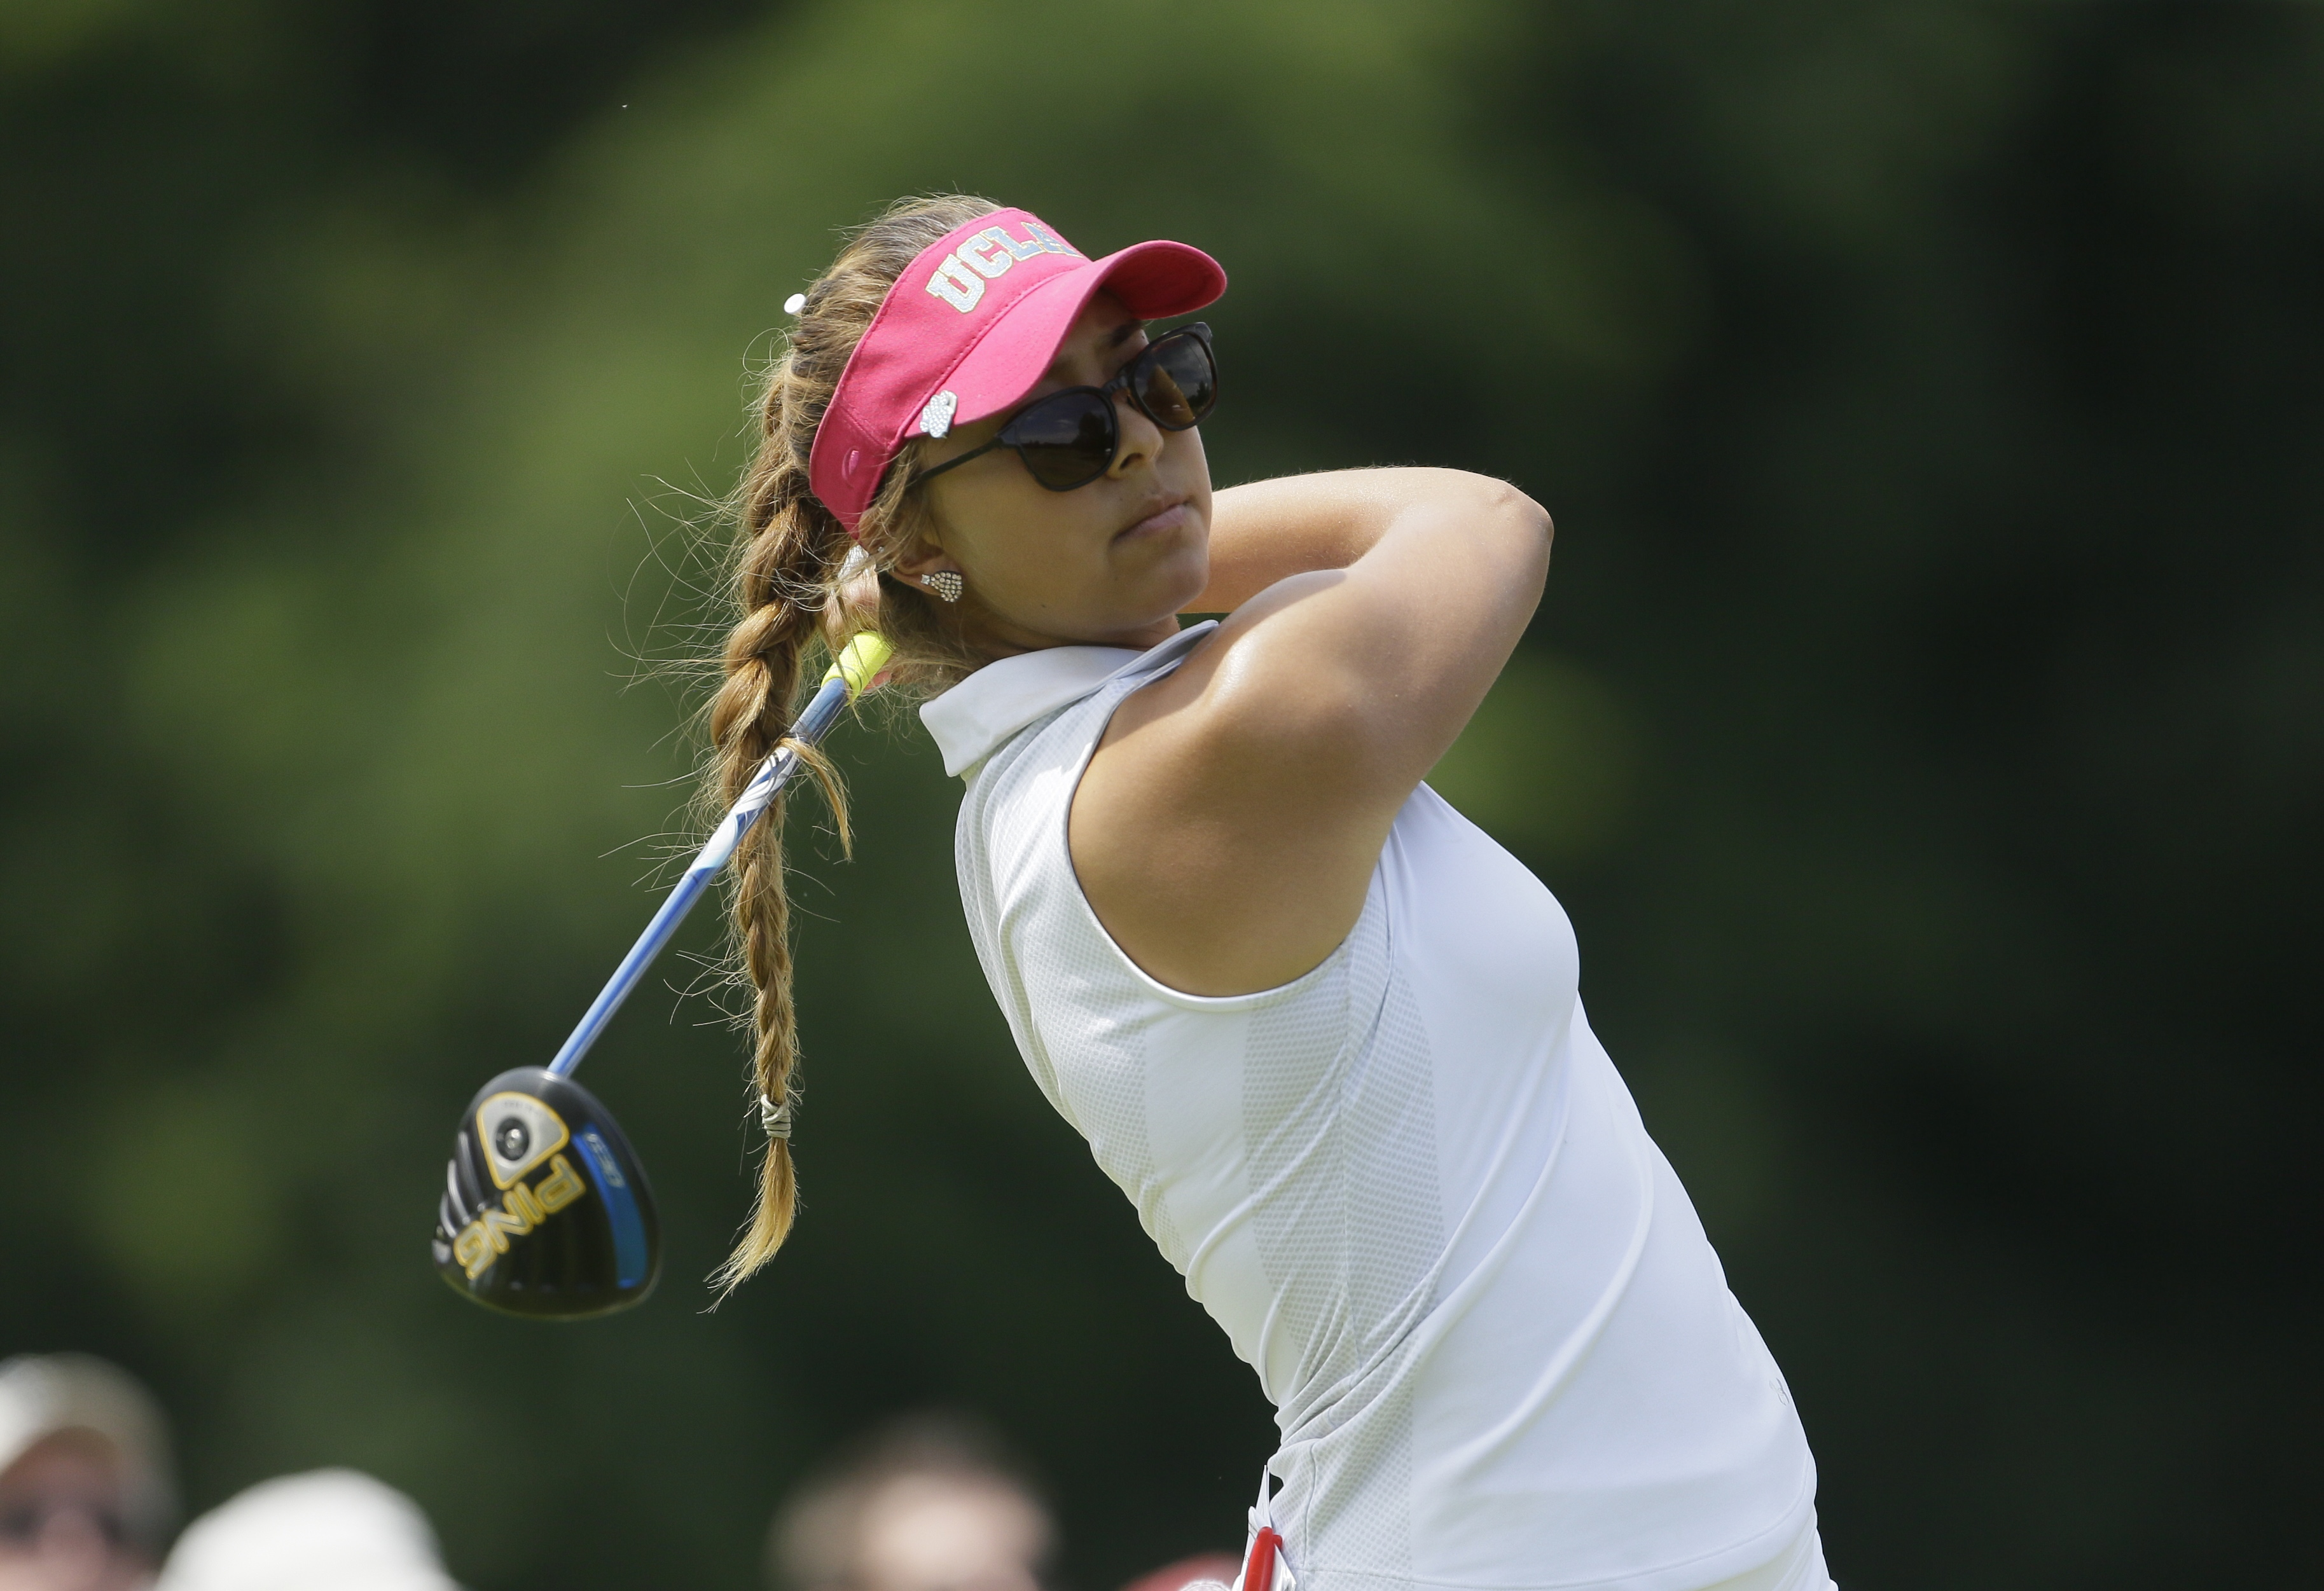 Alison Lee drives on the 16th hole during the final round of the Meijer LPGA Classic golf tournament at Blythefield Country Club, Sunday, July 26, 2015 in Belmont, Mich. (AP Photo/Carlos